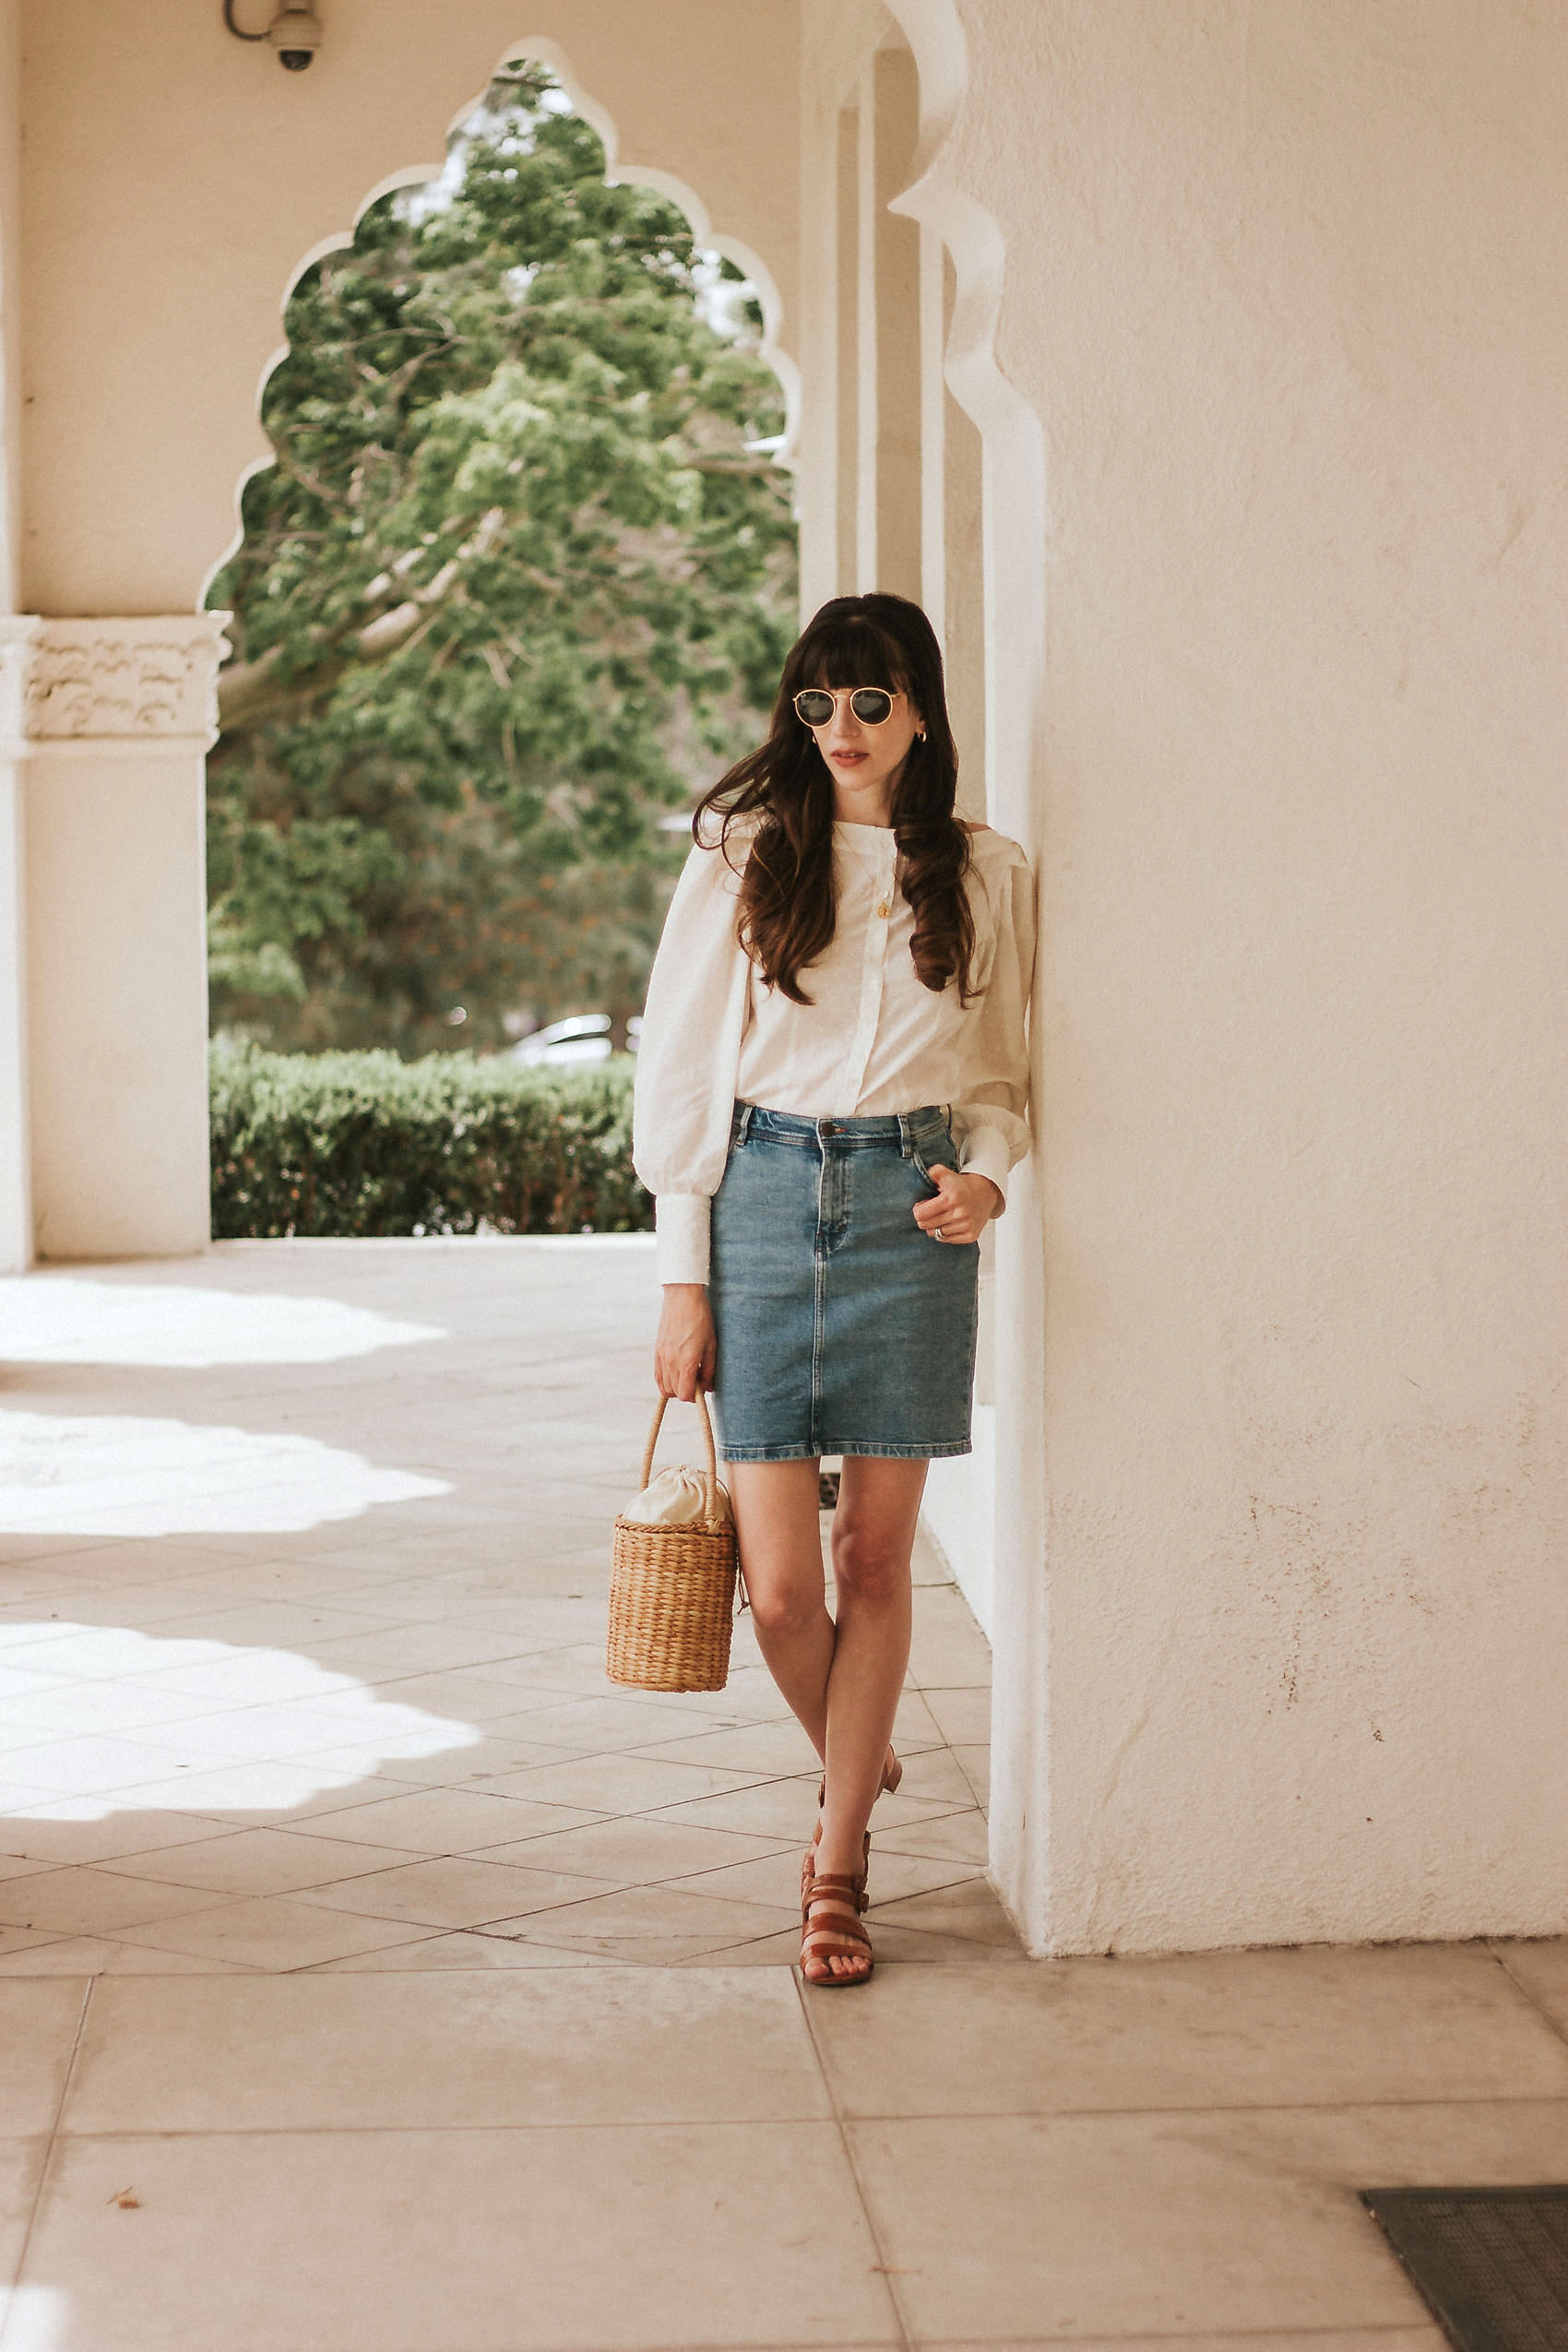 Jeans and a Teacup Blogger wearing And Other Stories Denim Skirt and Marais USA Sandals